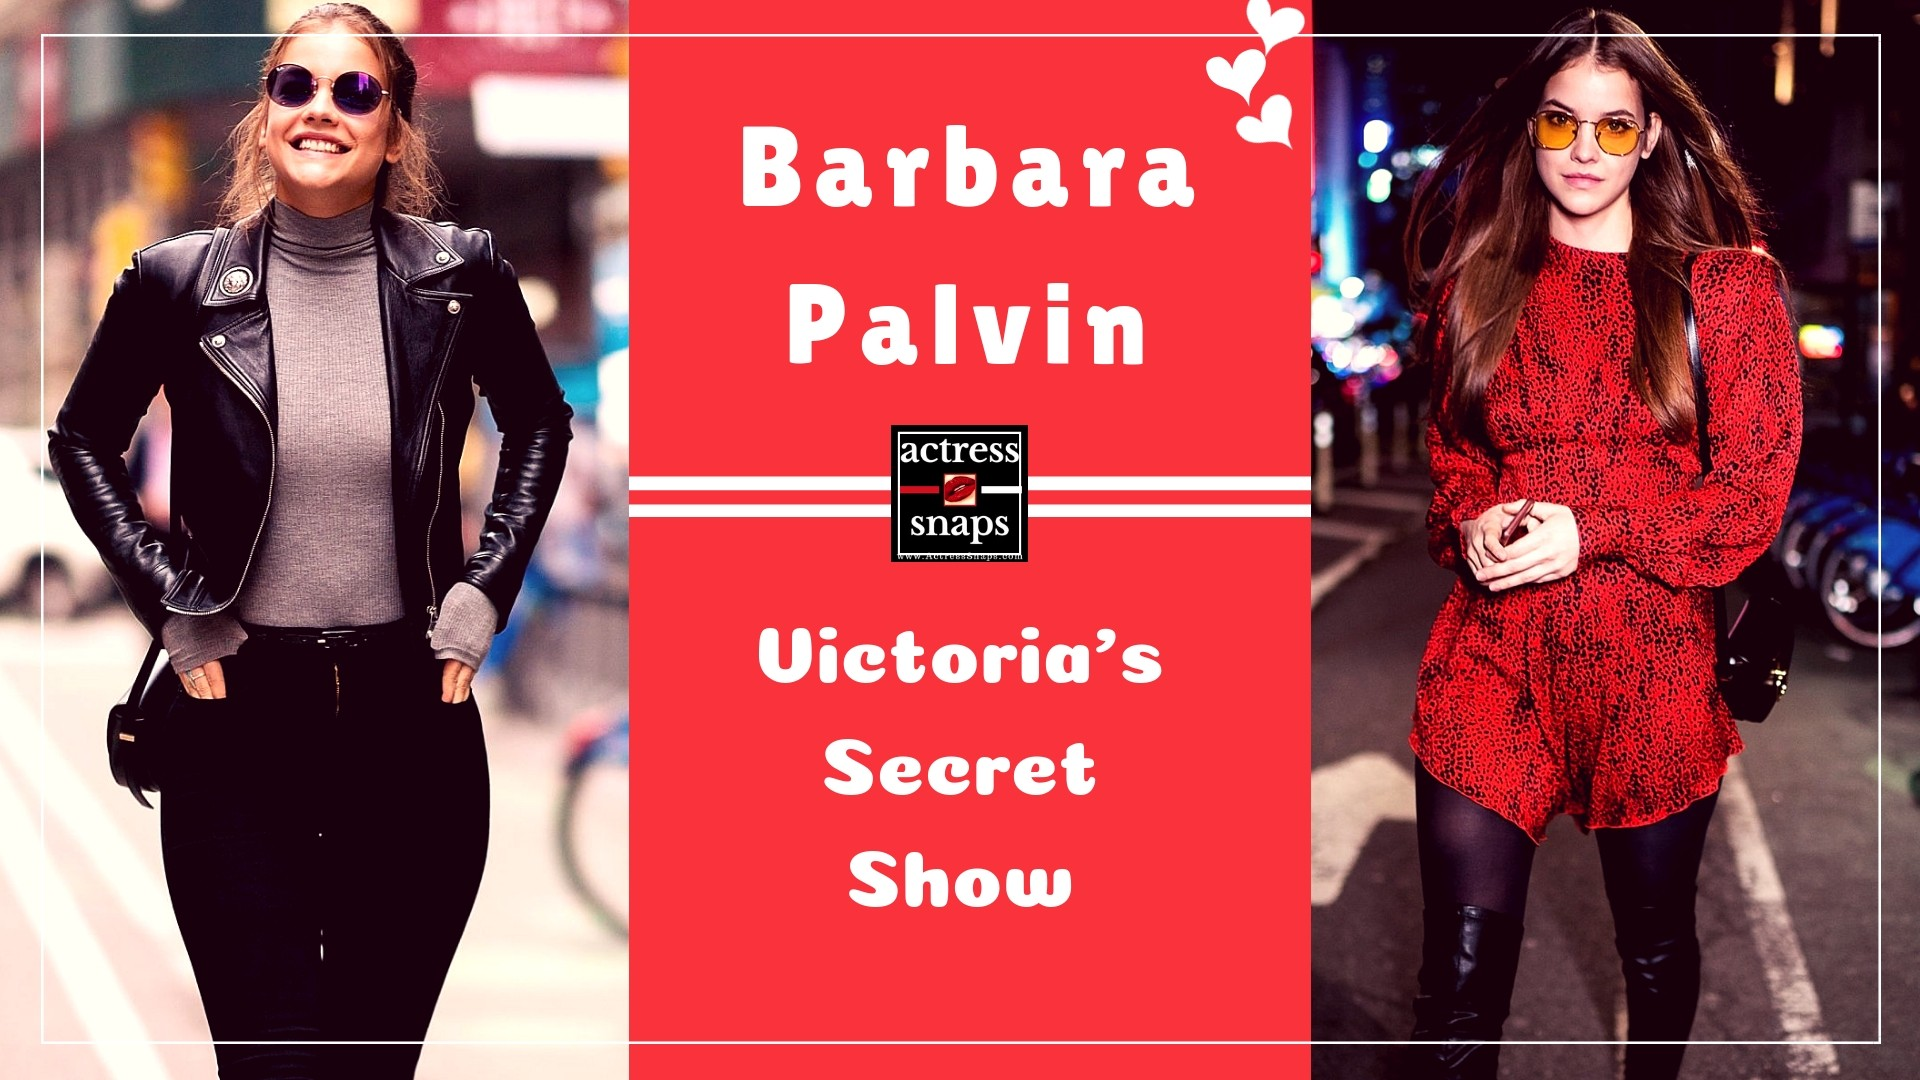 Barbara Palvin attending Victoria's Secret Fashion Show - Sexy Actress Pictures | Hot Actress Pictures - ActressSnaps.com